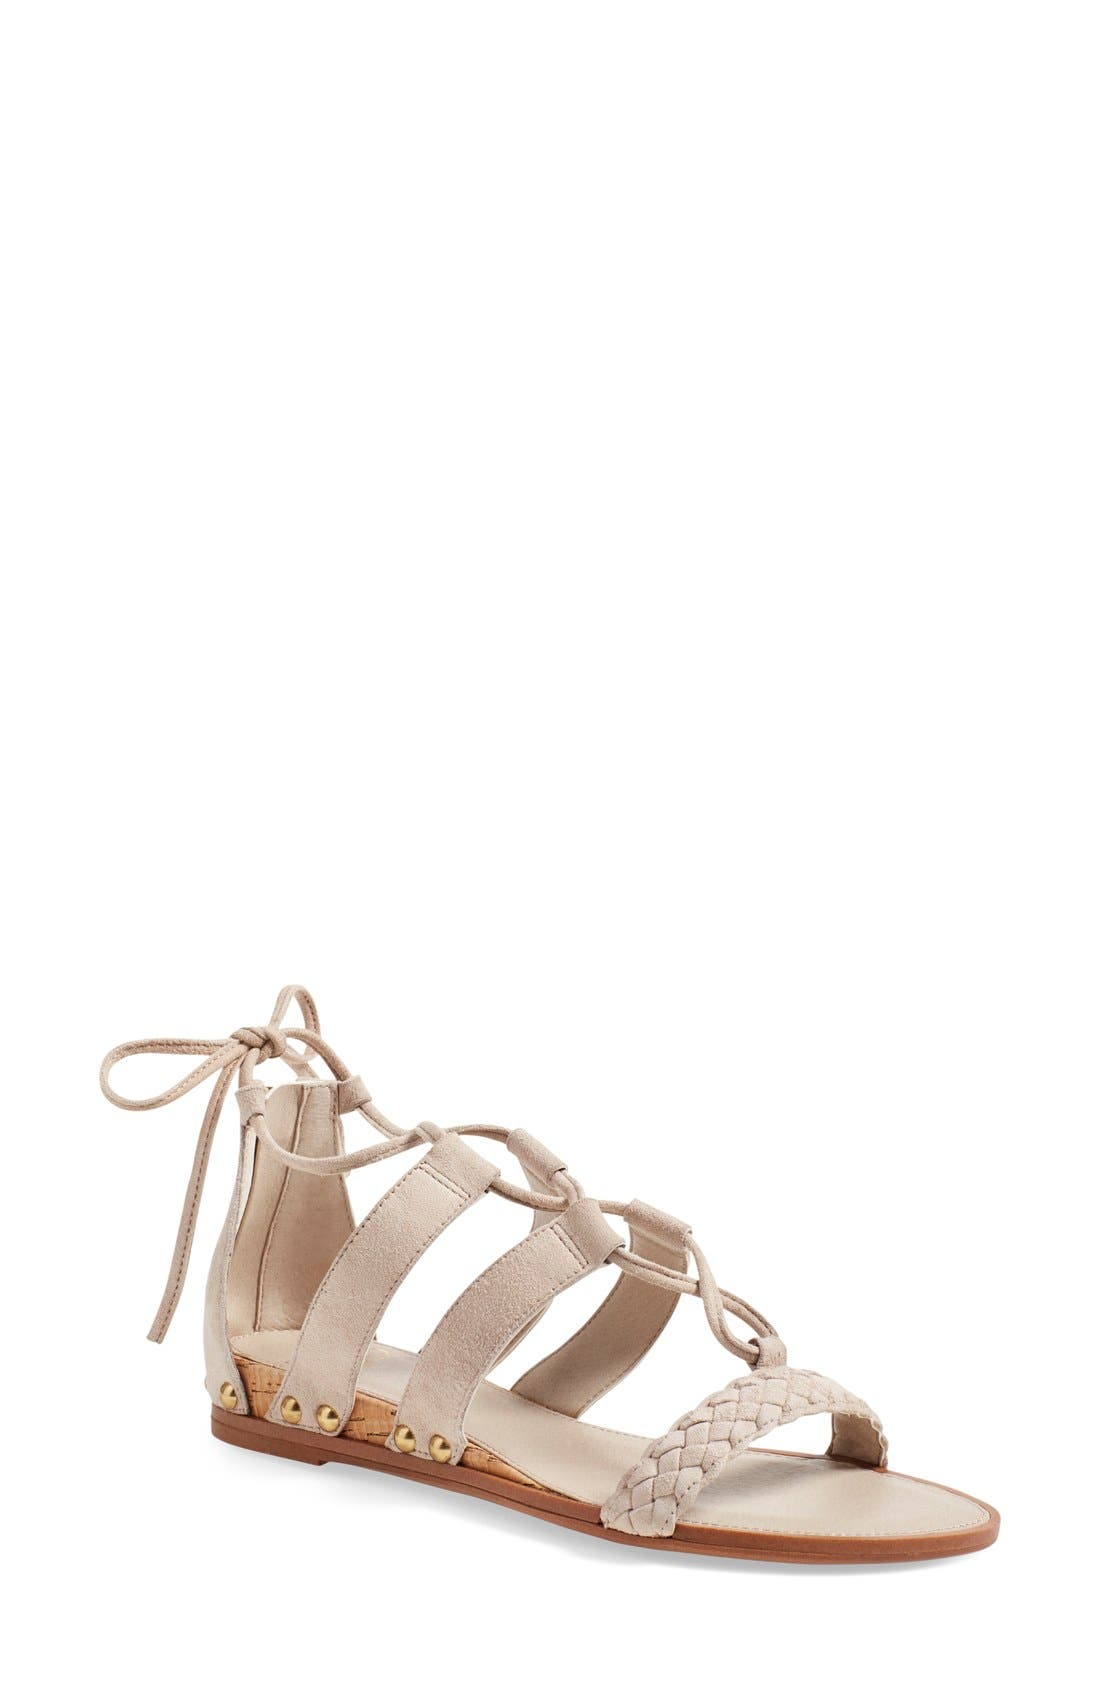 Main Image - SARTO by Franco Sarto 'Pierson' Lace-Up Sandal (Women)